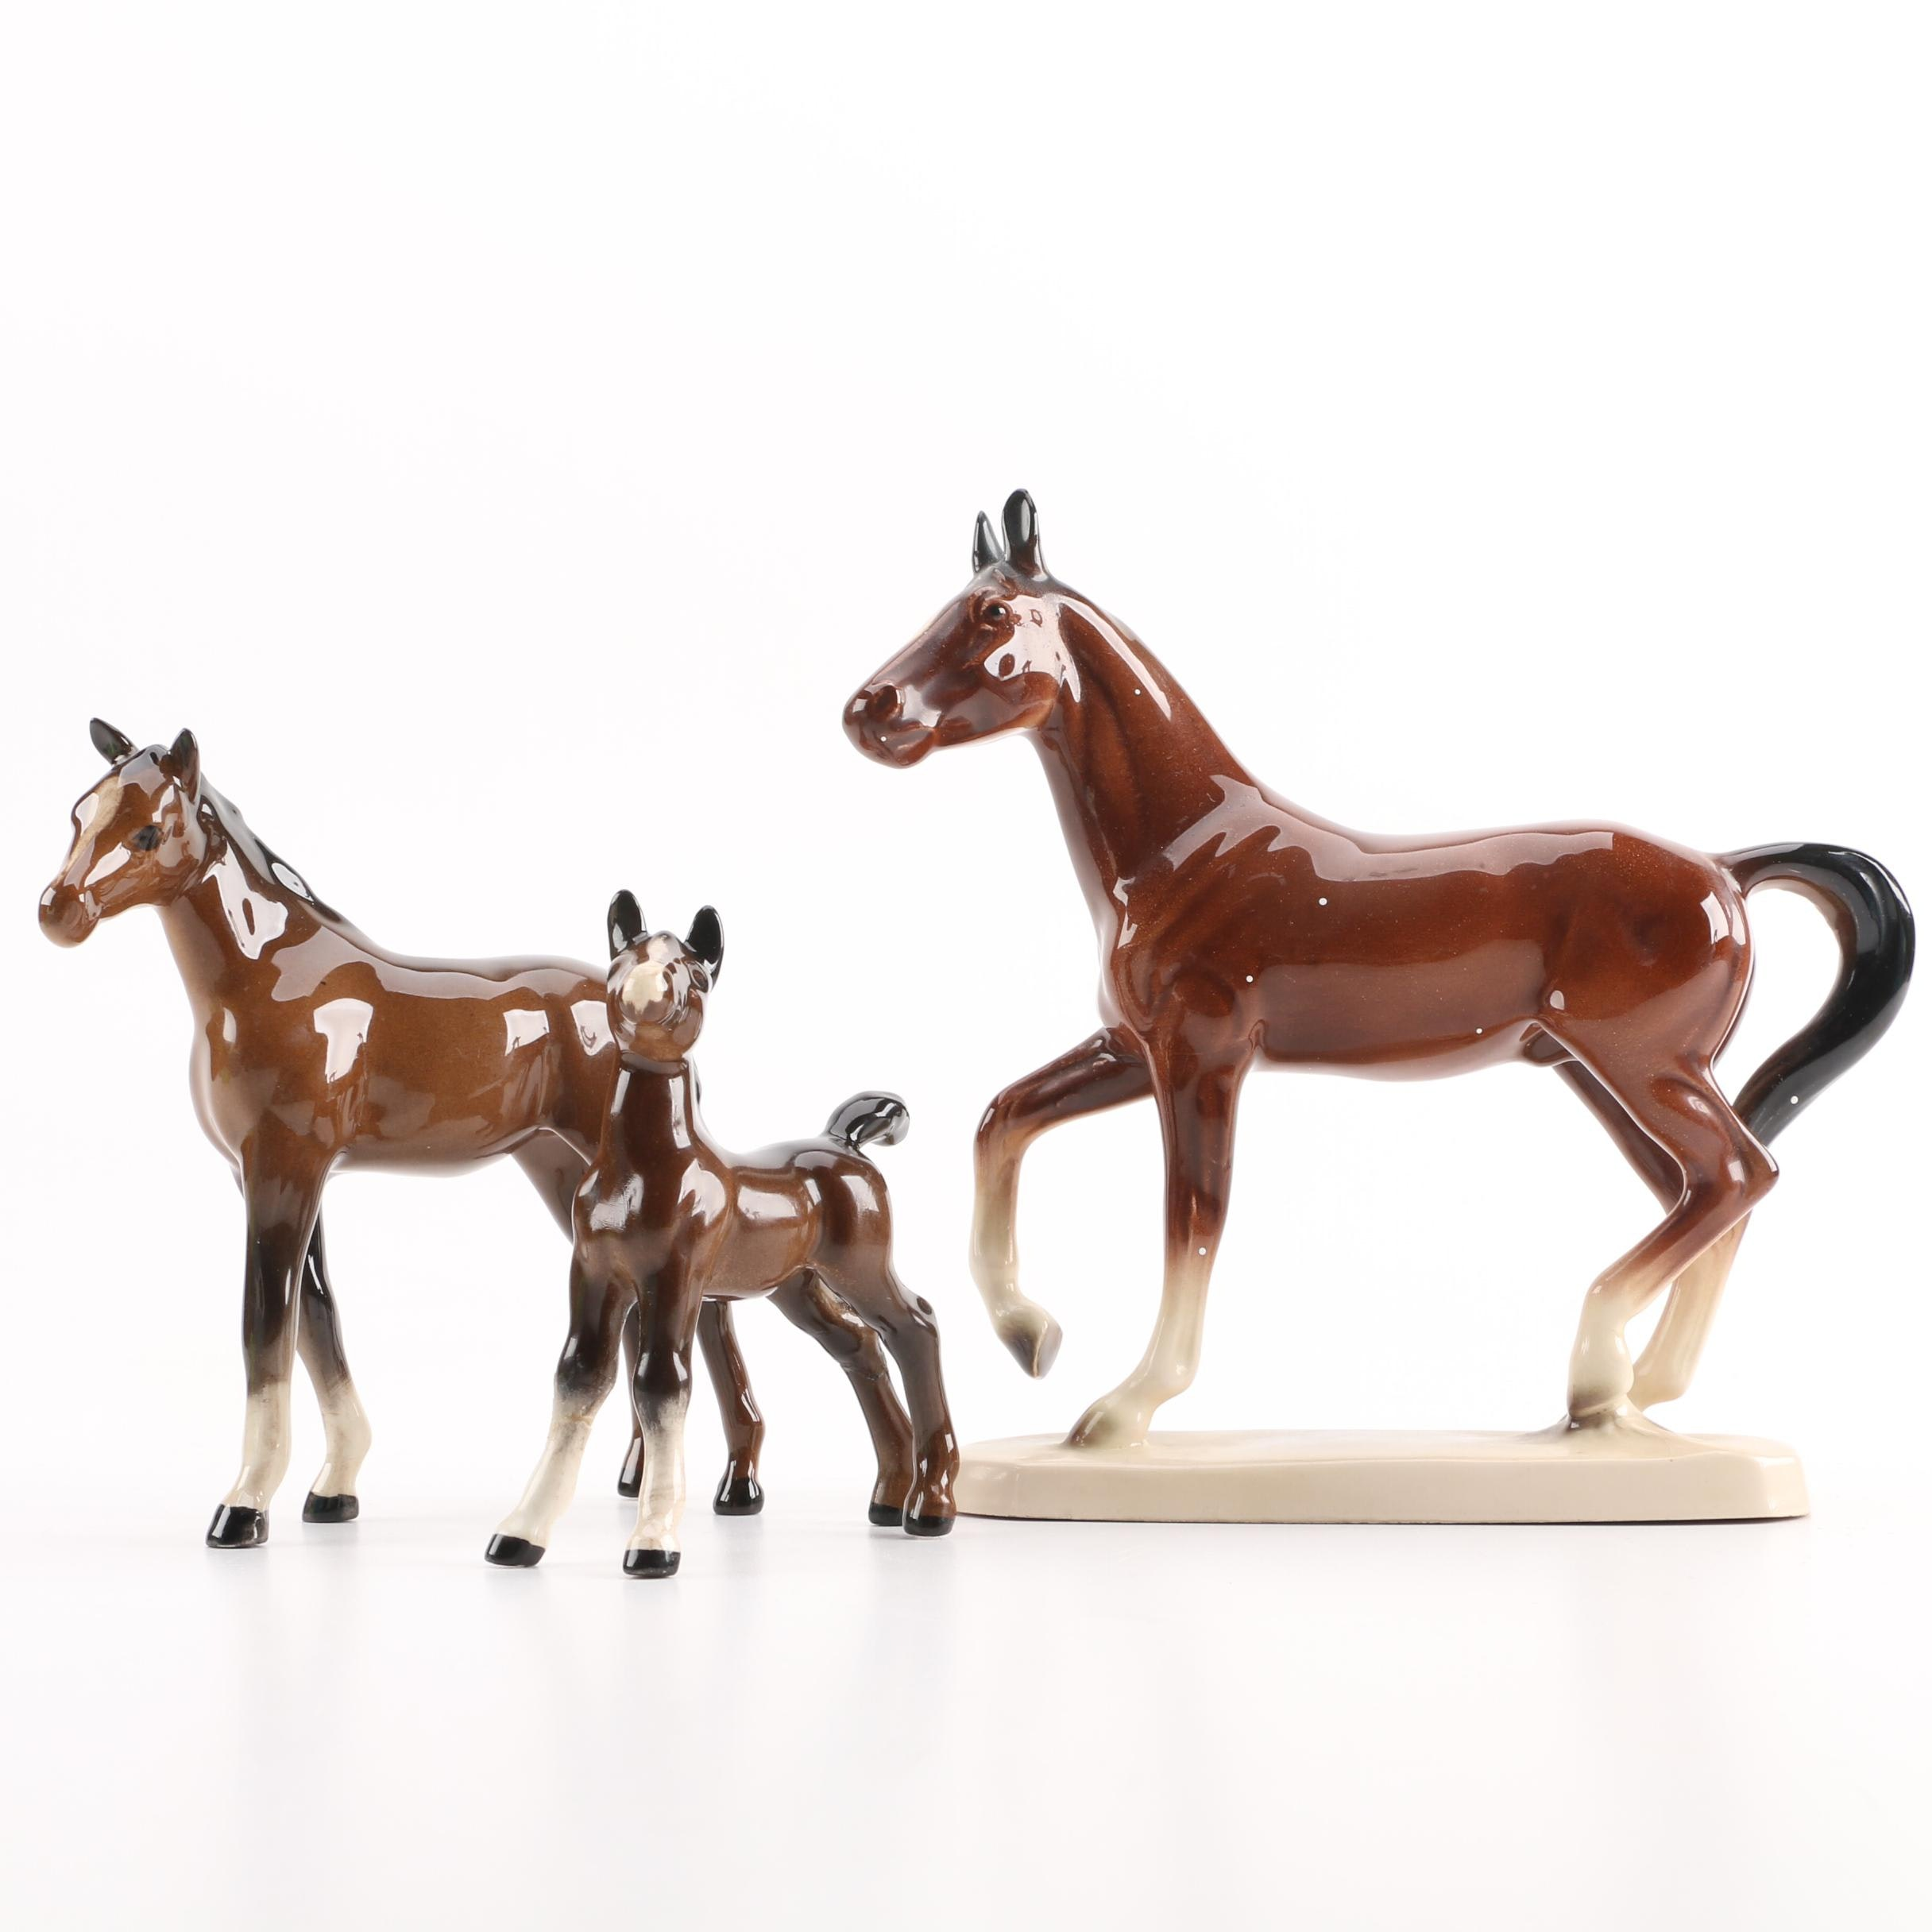 Hand-Painted Porcelain Horse Figurines